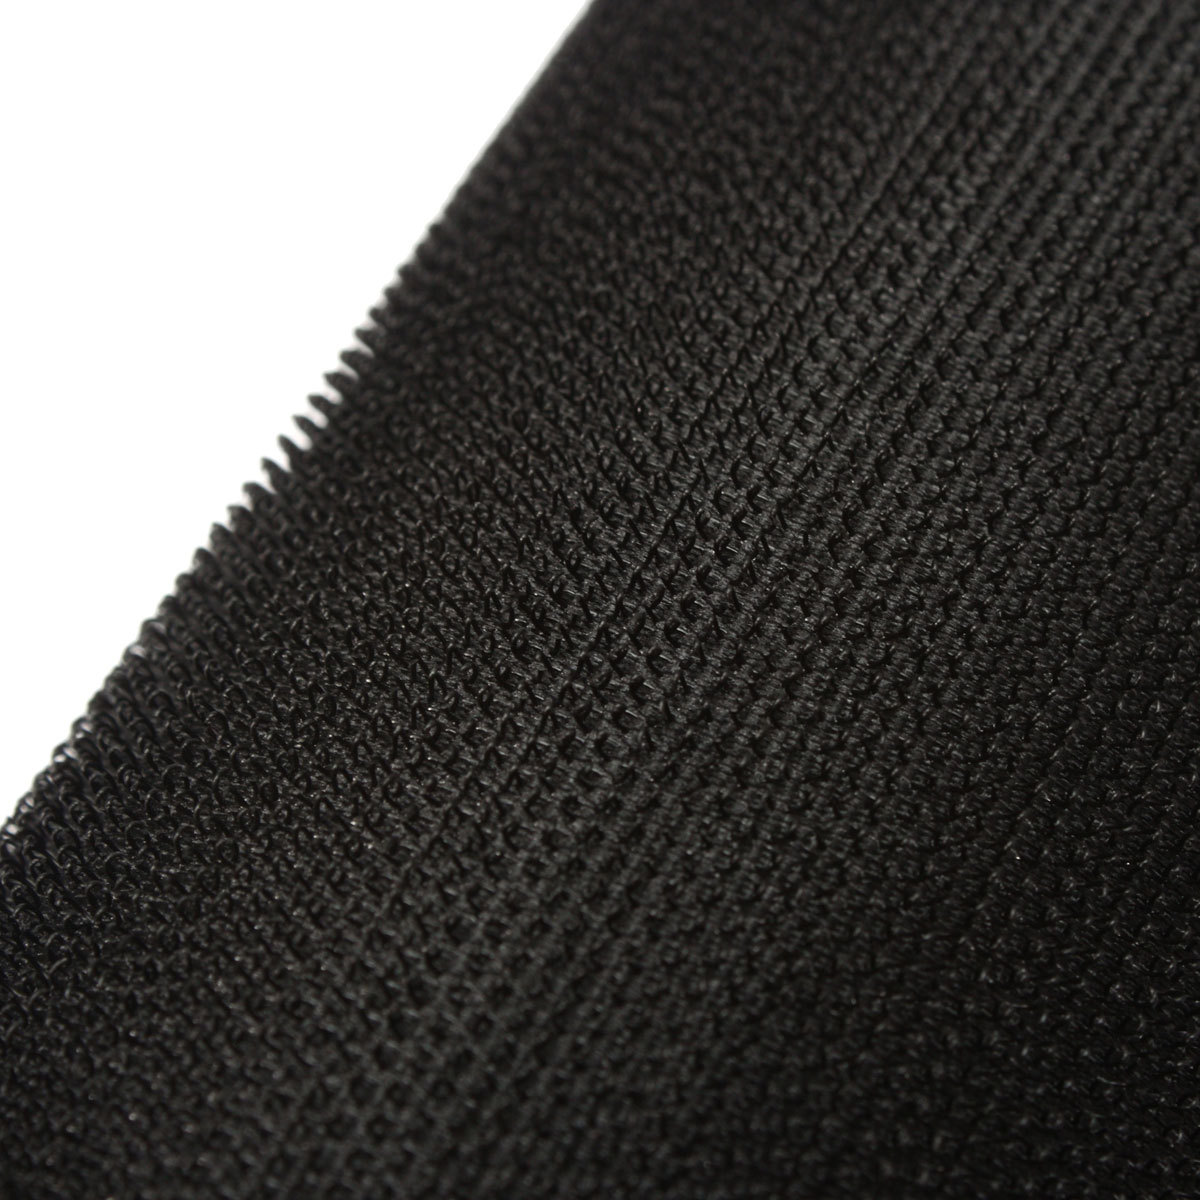 floor cable cover carpet magic tape nylon wire organiser 2m length 100mm width ebay. Black Bedroom Furniture Sets. Home Design Ideas